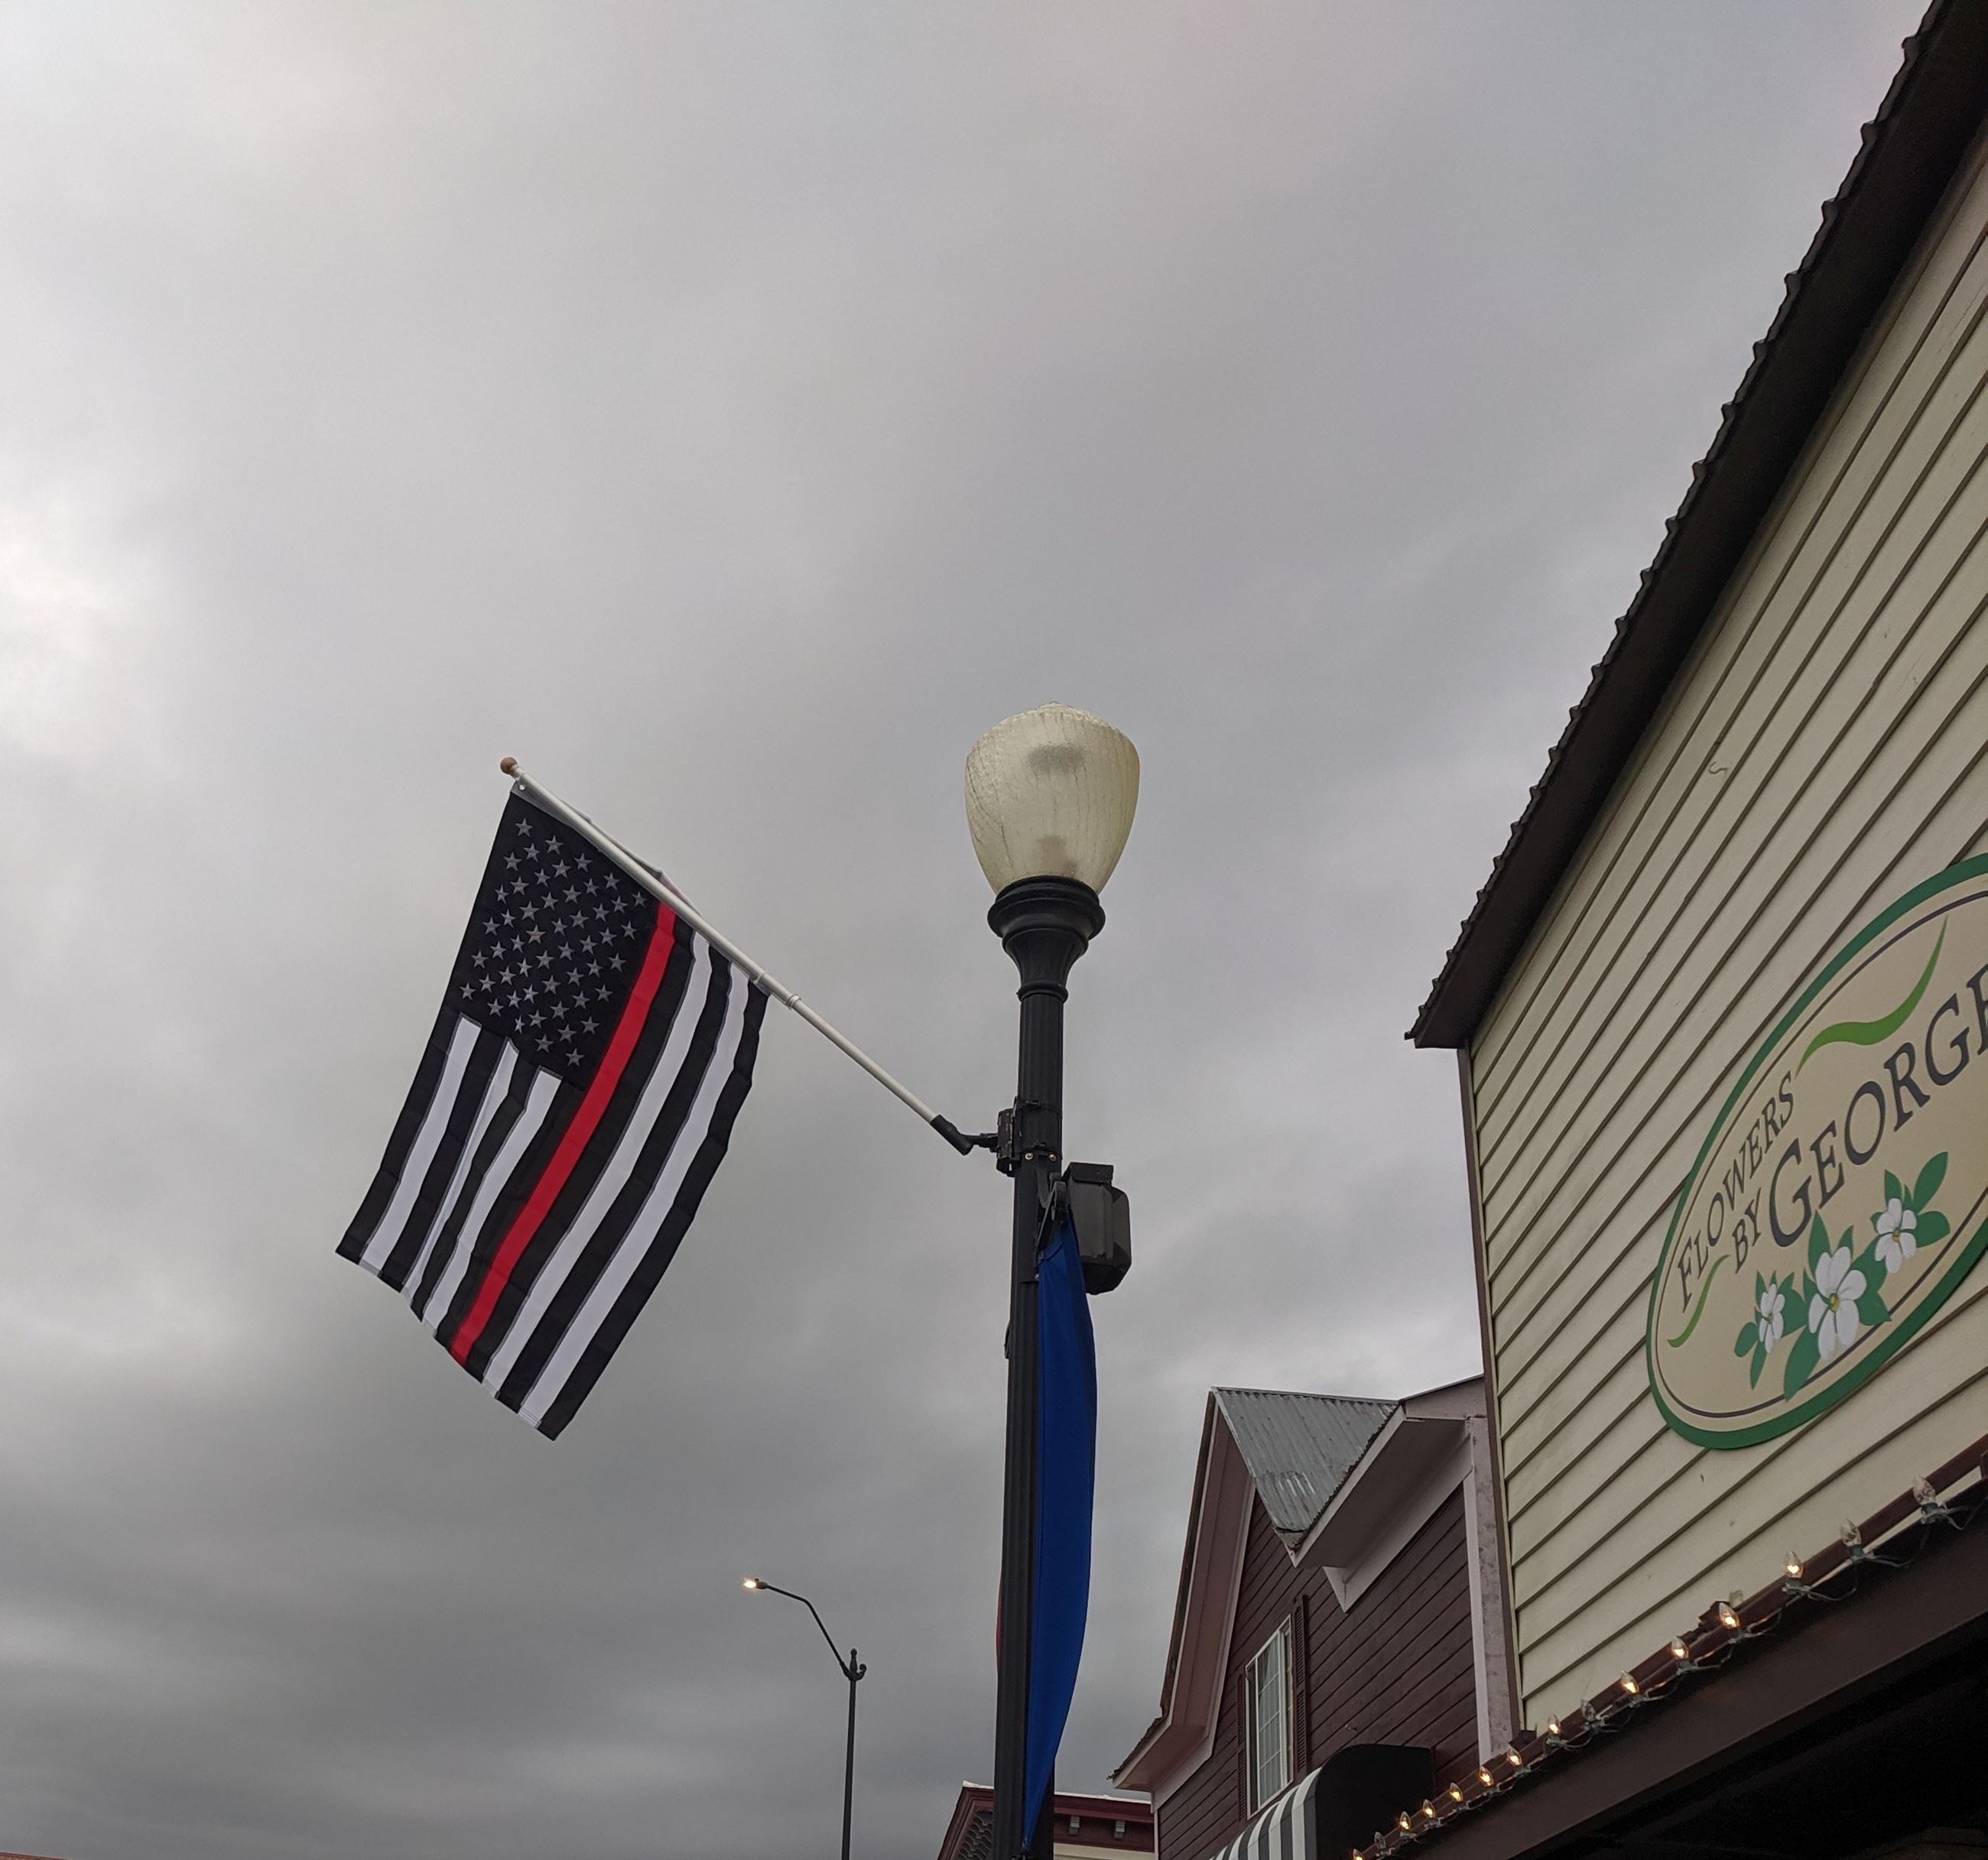 Flag hanging on Olympic Avenue. Flag is 13 black and white alternating horizontal stripes, one red s